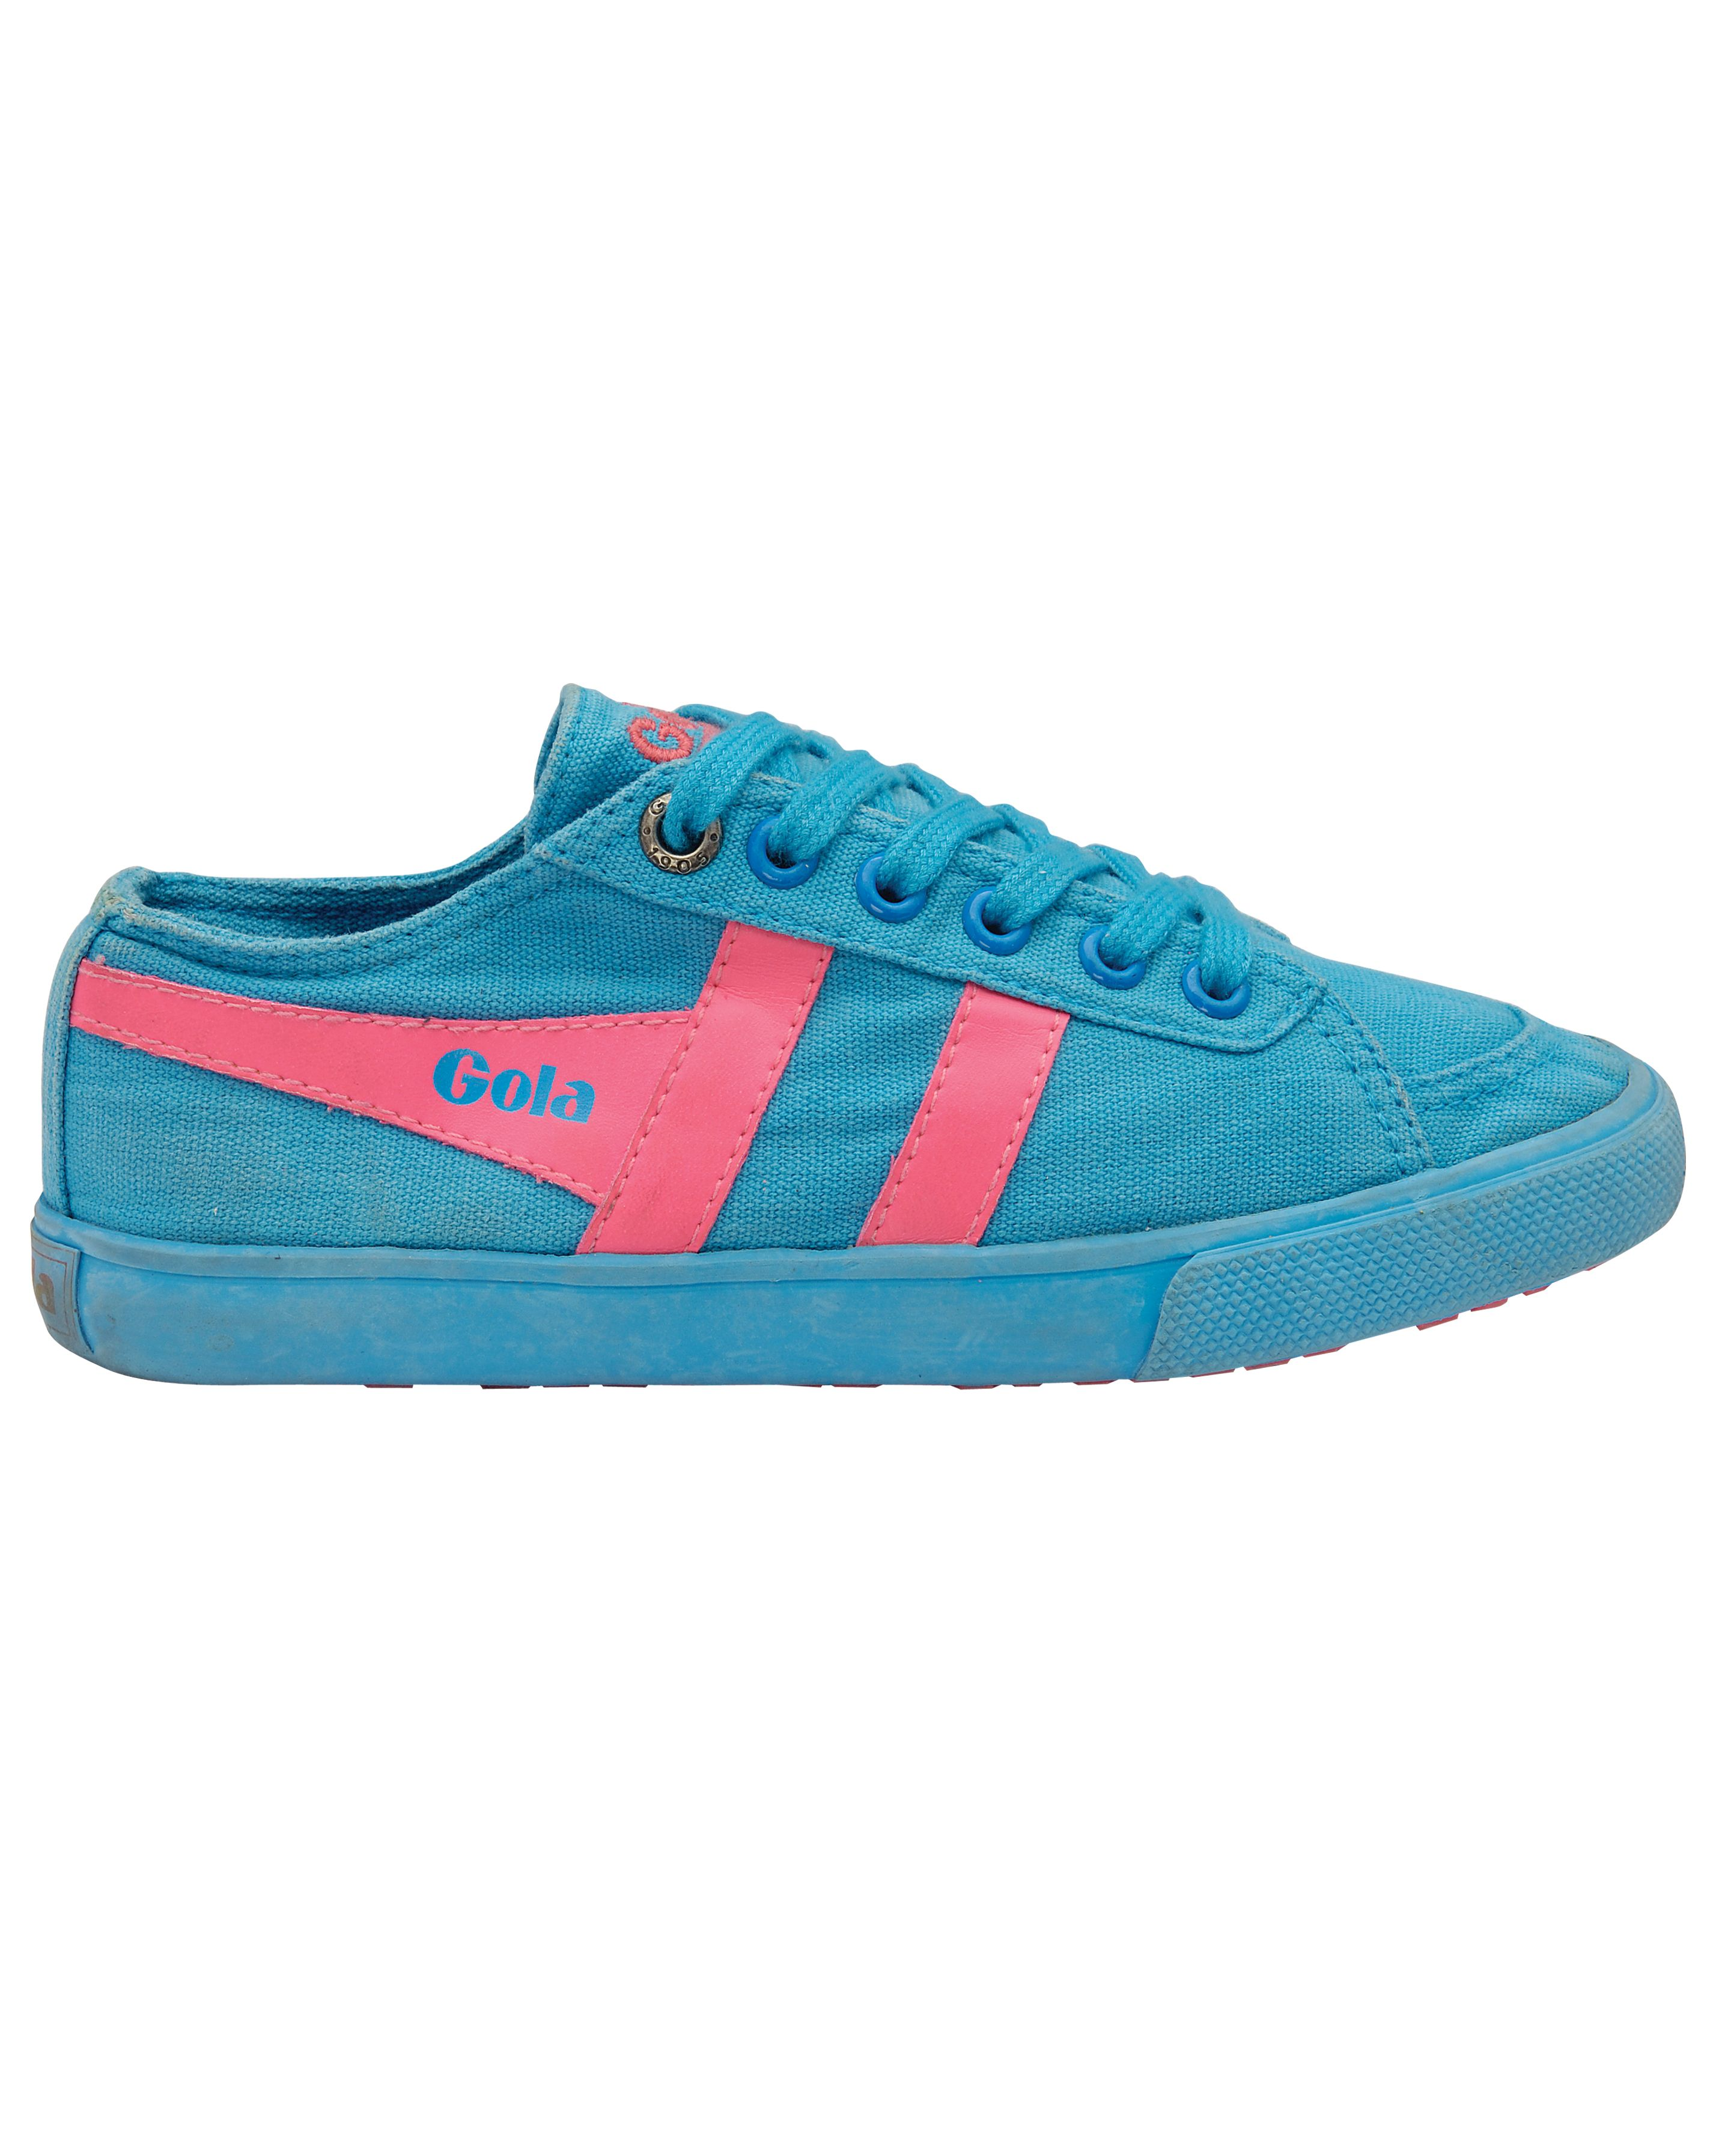 Quota Neon classic trainer shoes